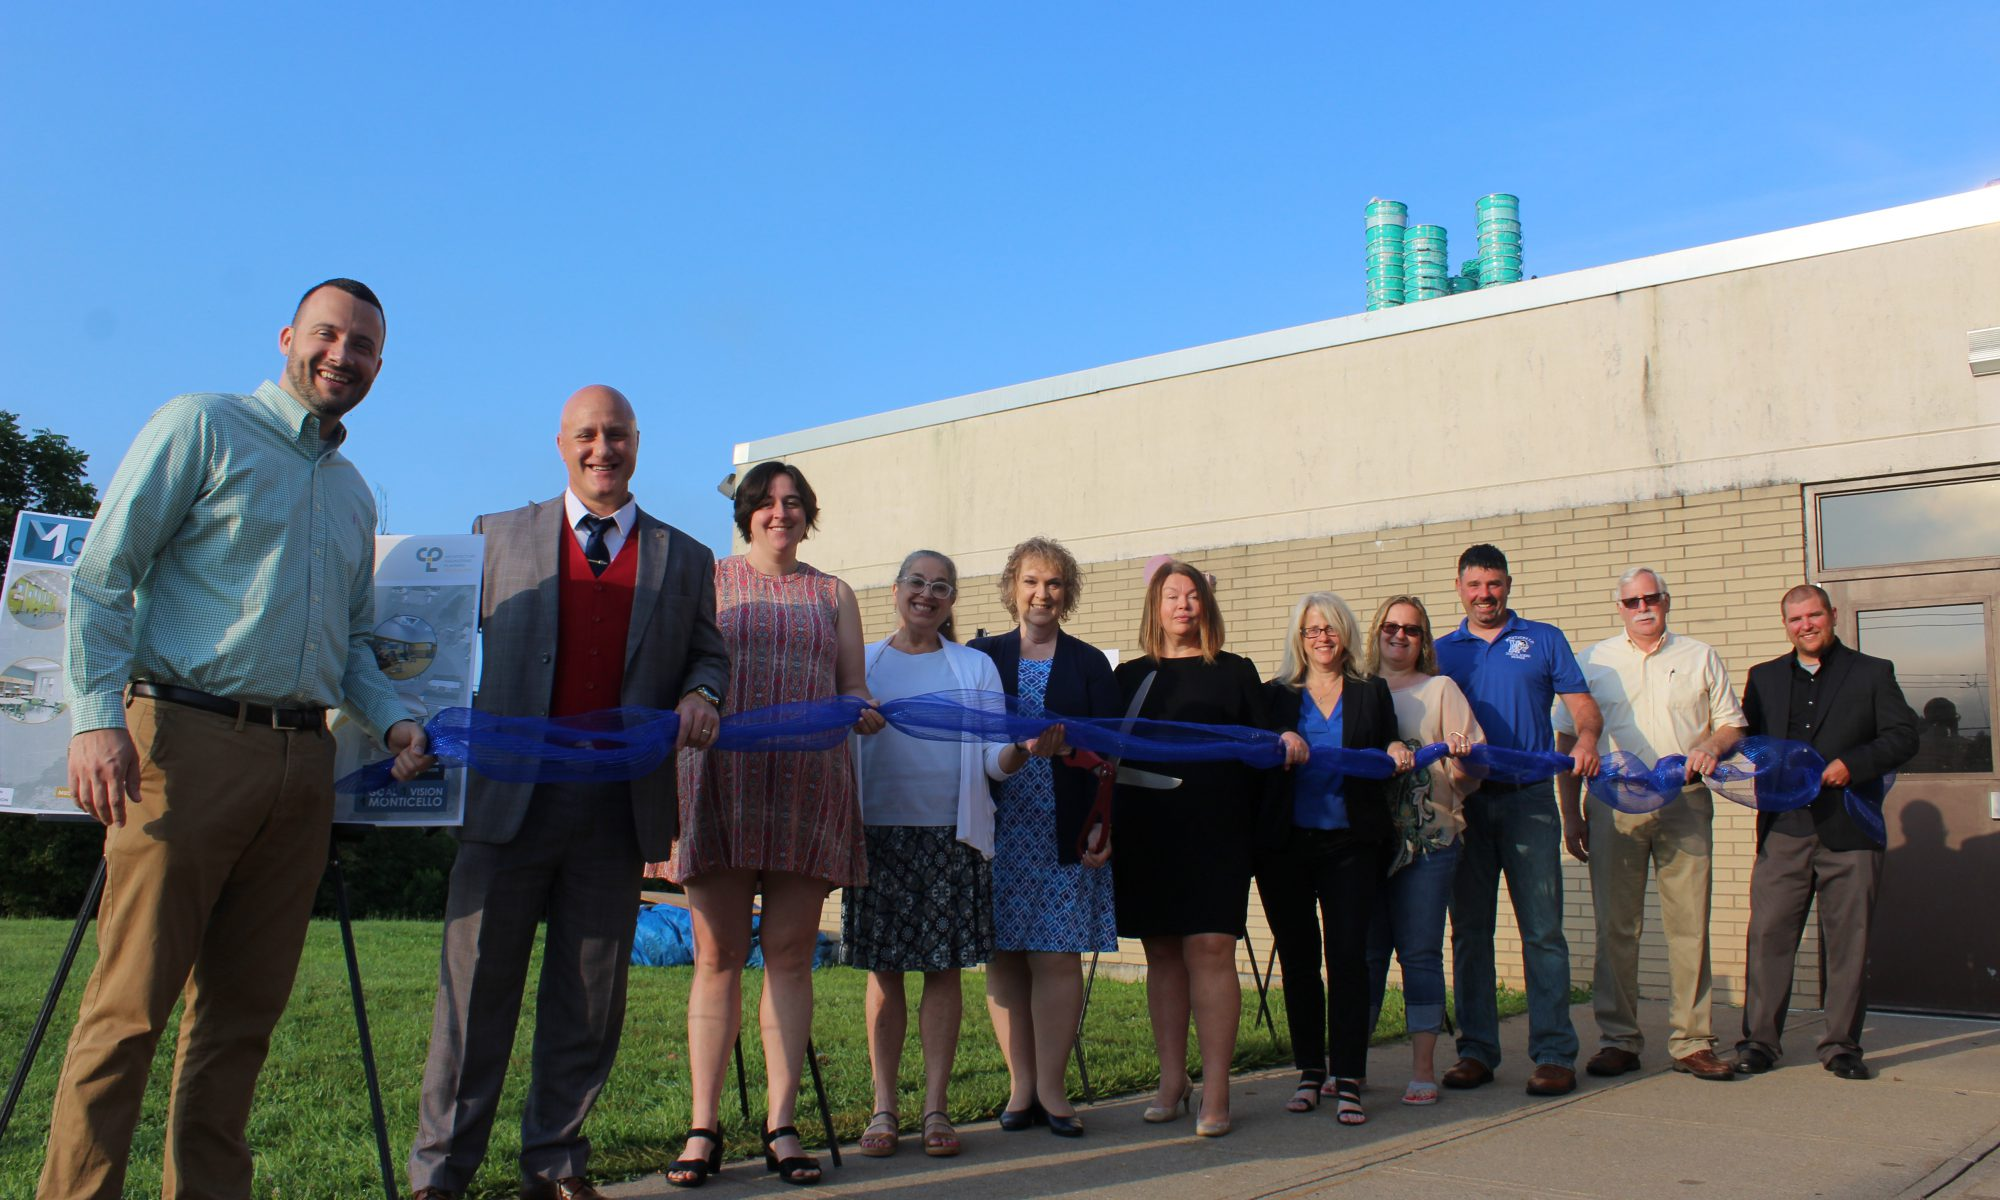 members of the board and representatives from the district's architectural firm cut a ribbon